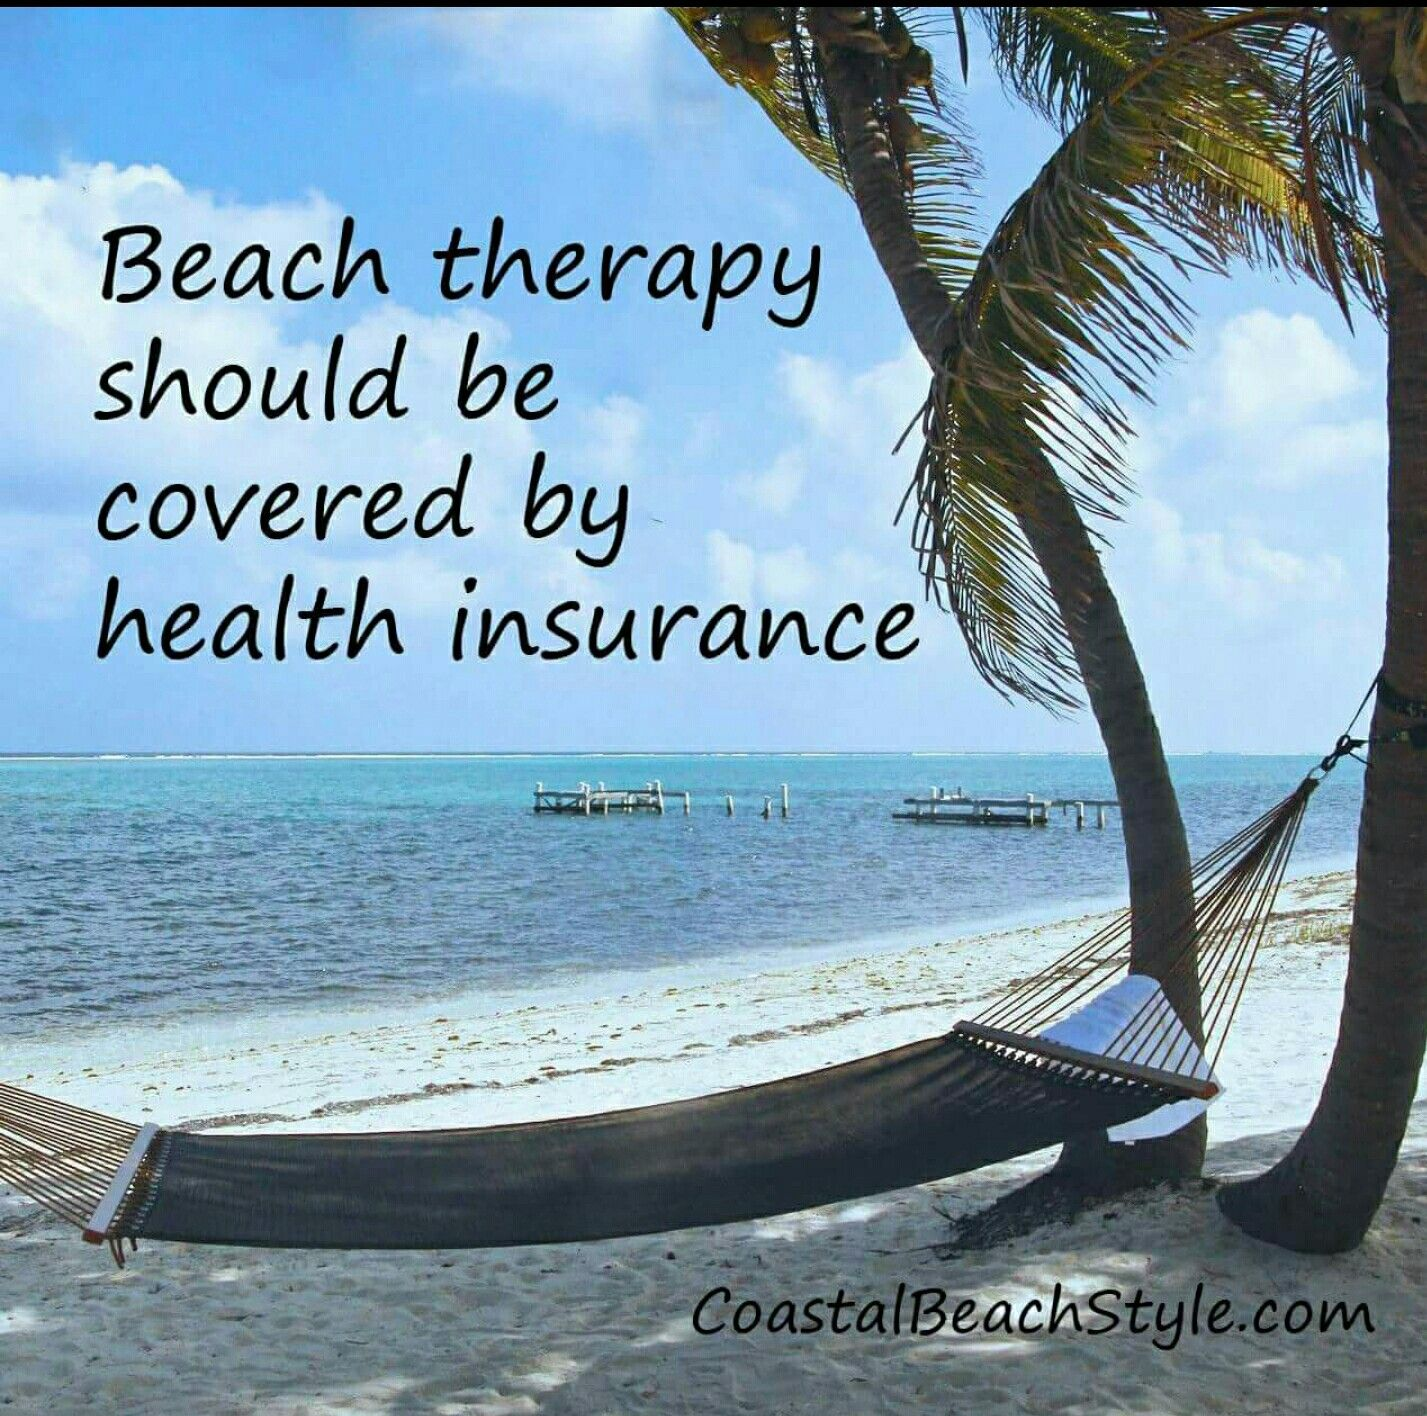 Funny Beach Quotes And Sayings: Who Would AGREE? #BeachLiving #MyrtleBeachLiving